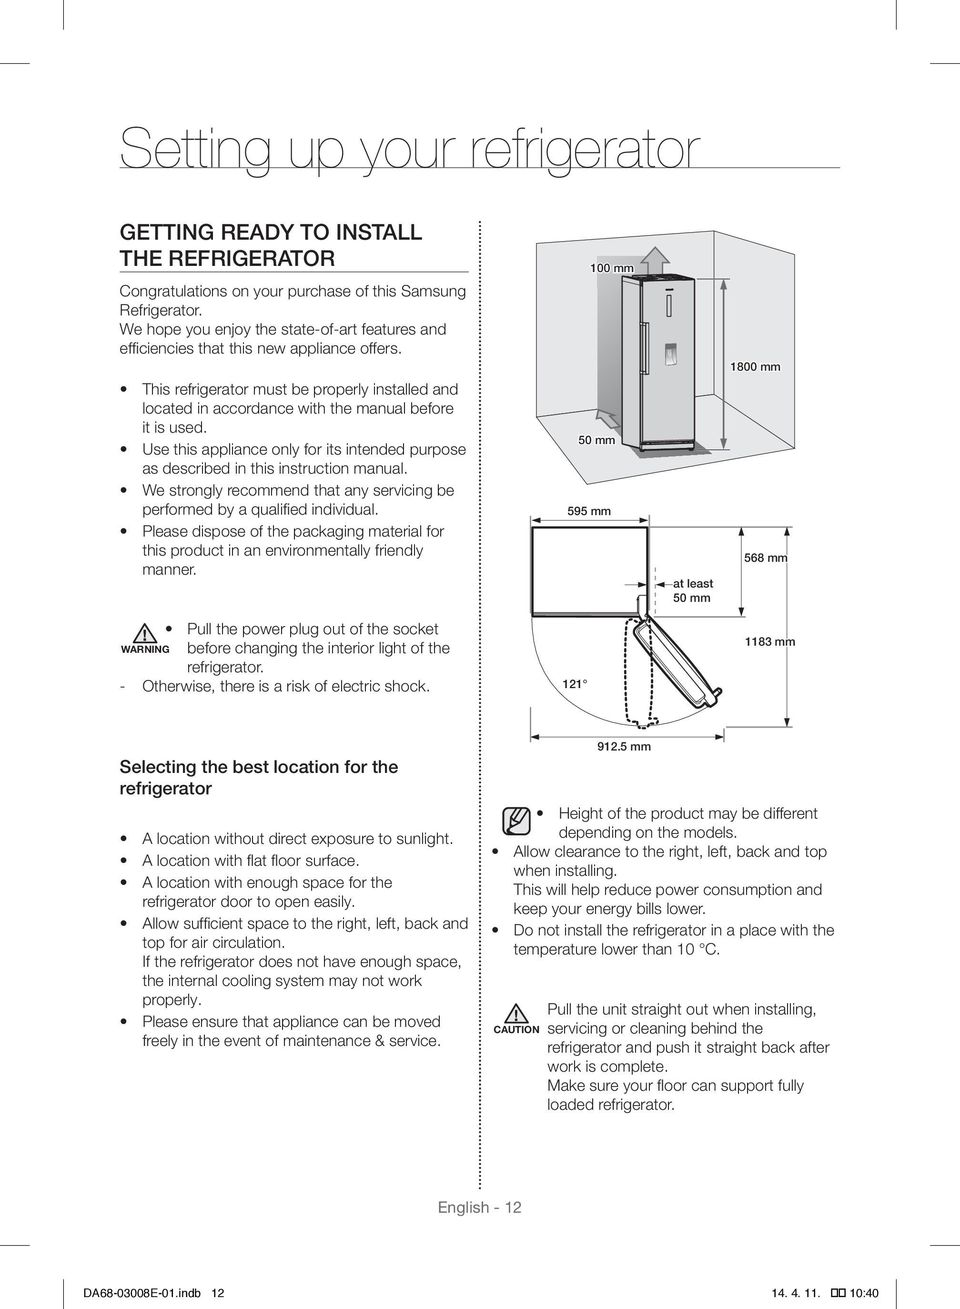 Use this appliance only for its intended purpose as described in this instruction manual. We strongly recommend that any servicing be performed by a qualified individual.